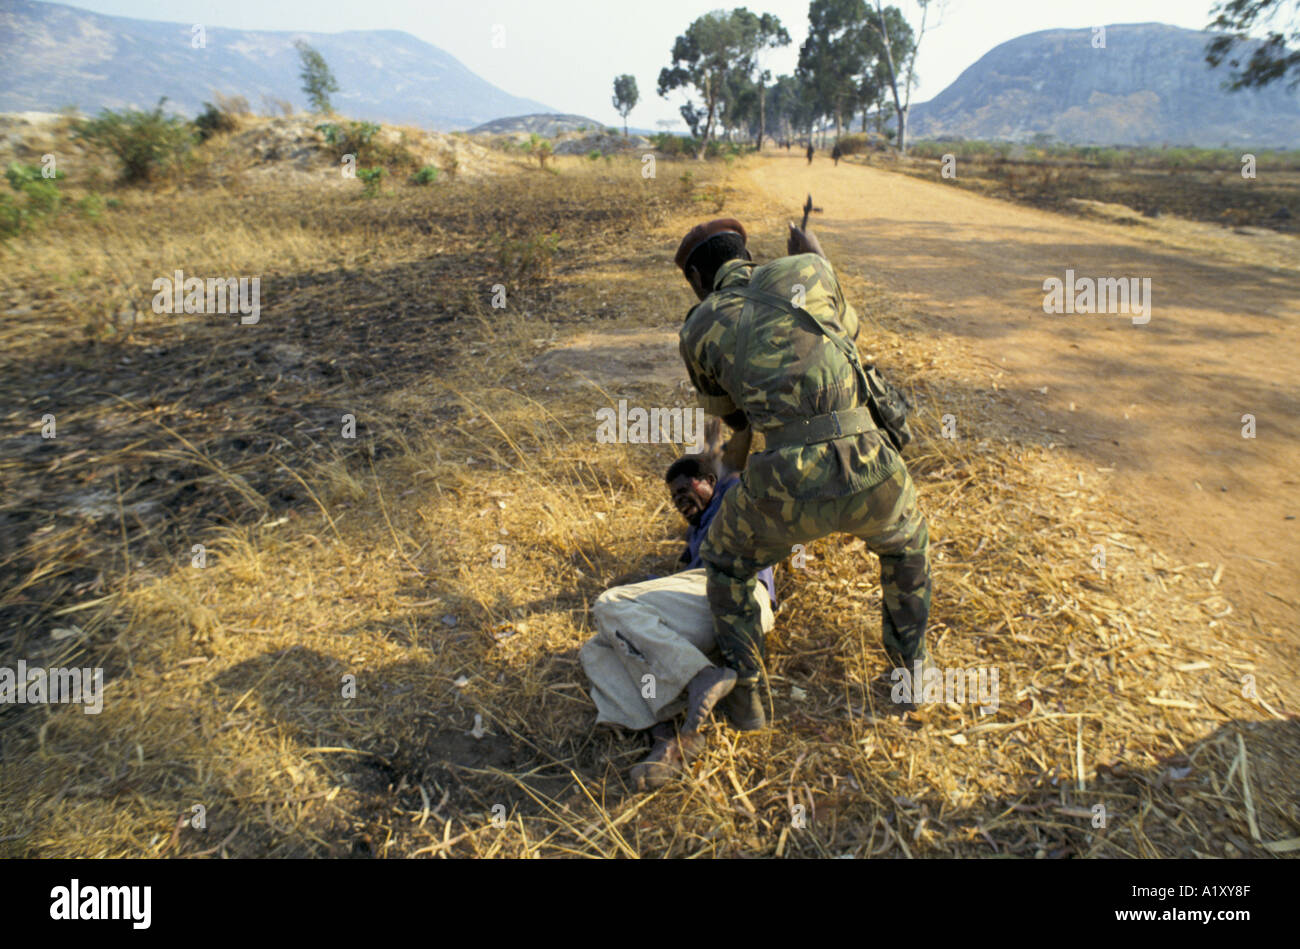 ANGOLA CIVIL WAR AUG 1993 A SUSPECTED UNITA GUERILLA IS BEATEN UP BY A SOLDIER WITH RIFLE BUTTS - Stock Image